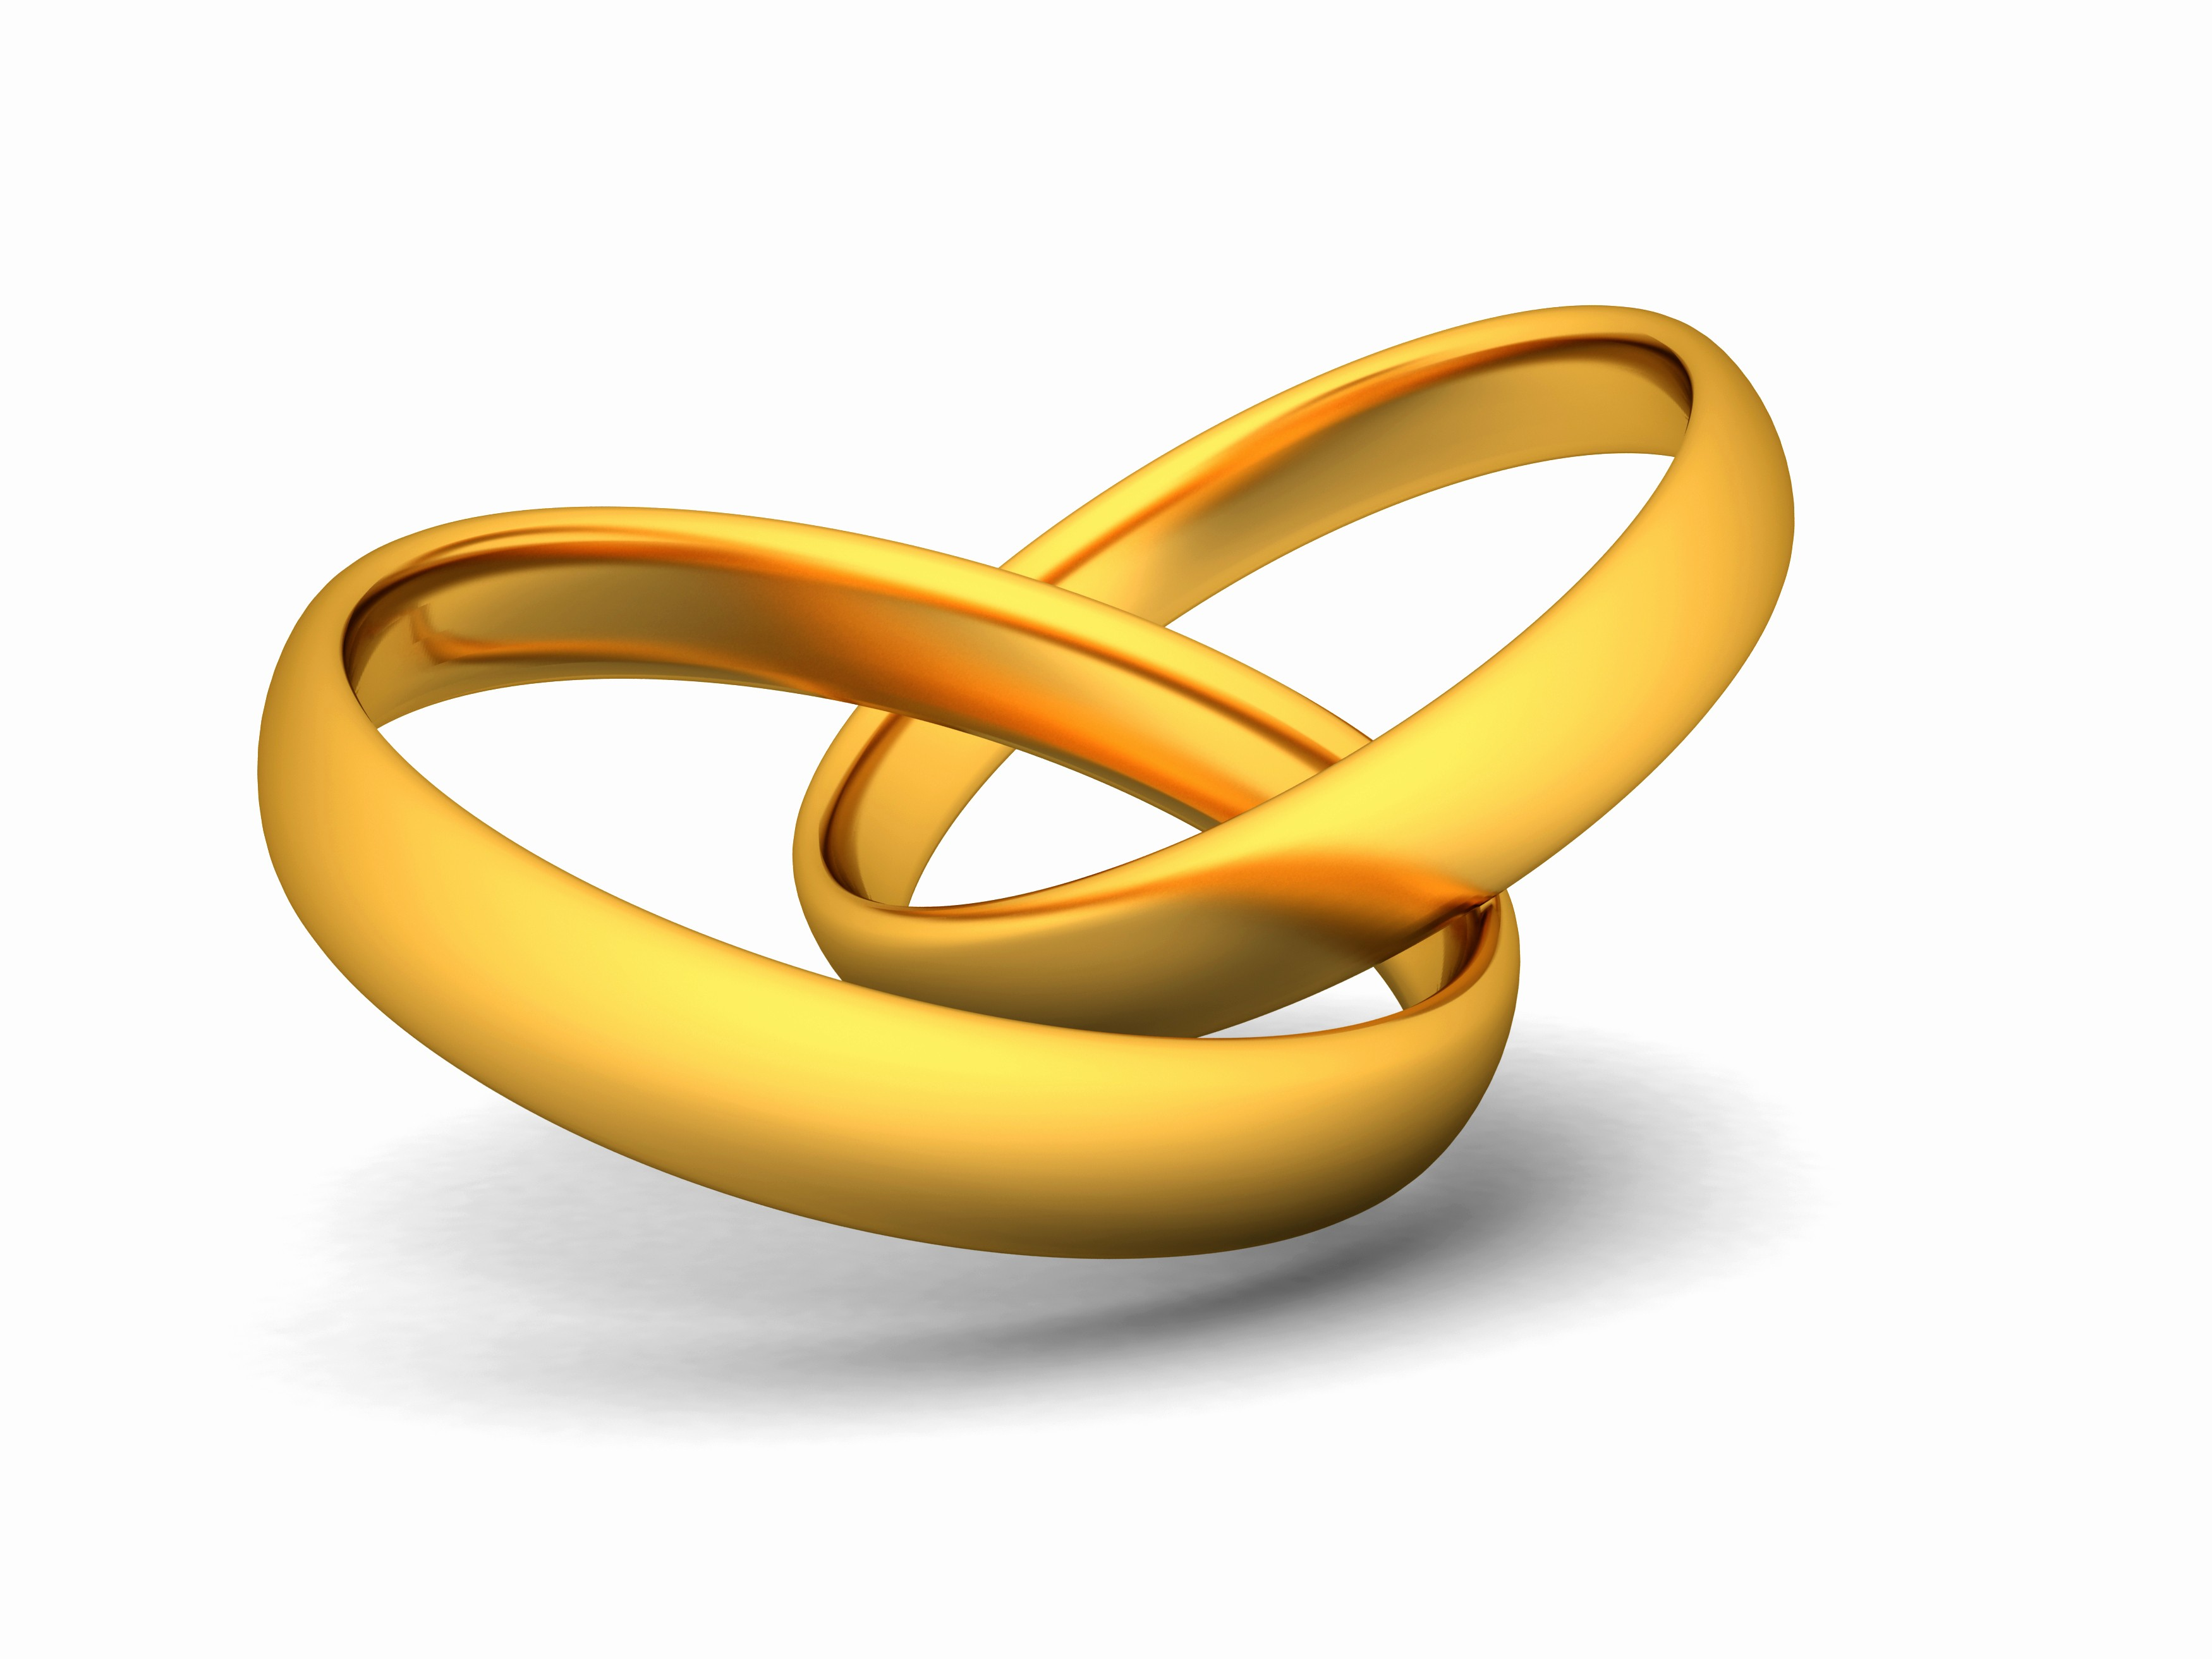 3500x2625 Gold Engagement Ring Png Transparent Clip Art Image Gallery